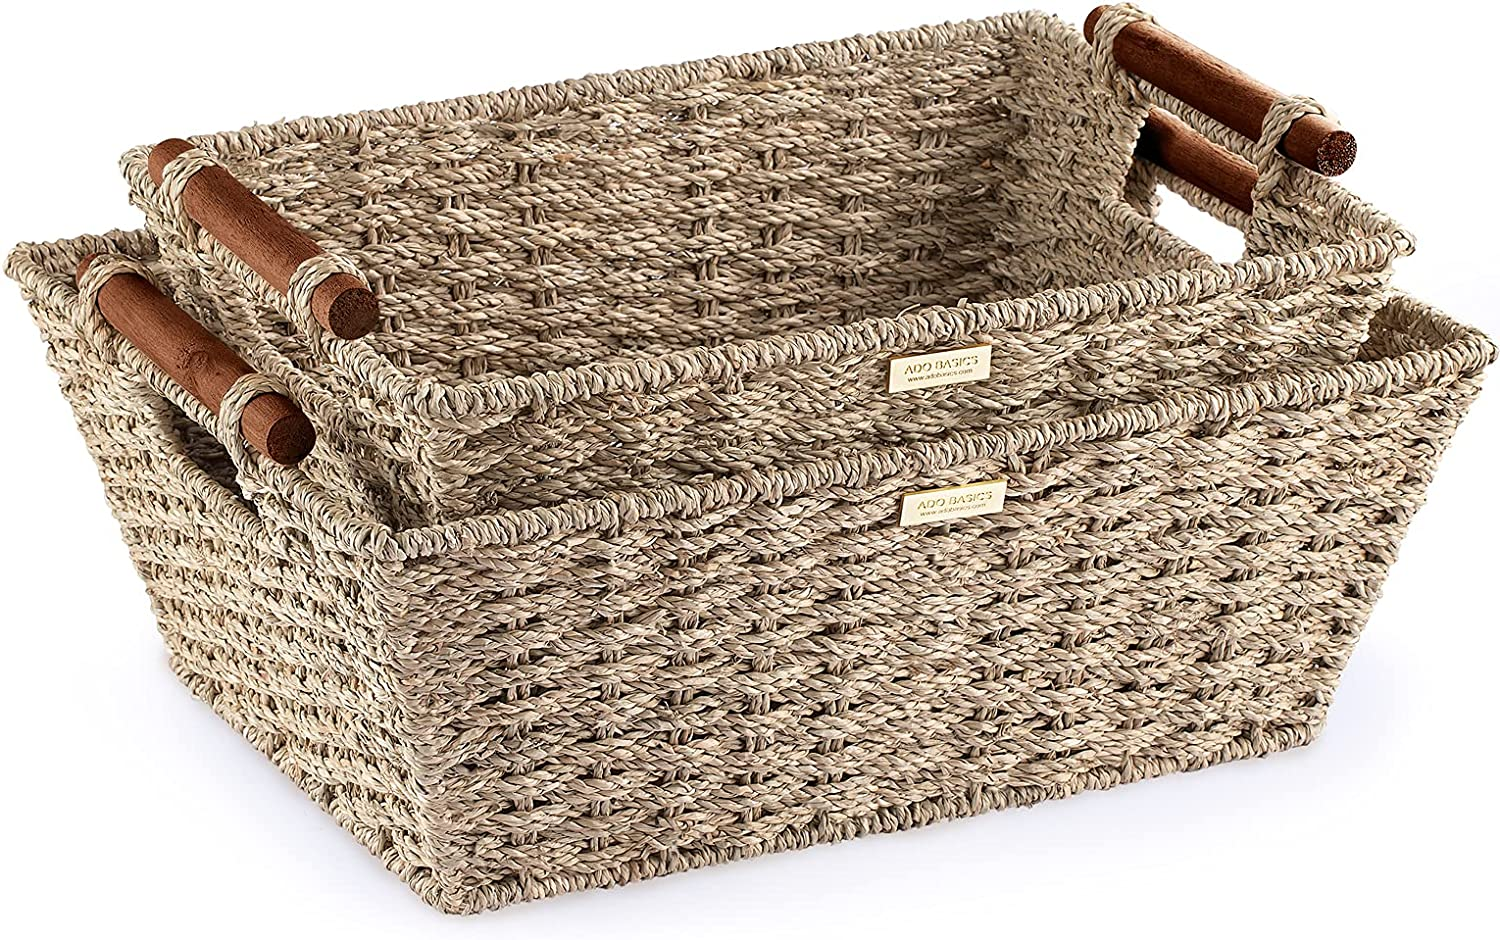 ADO Jumbo Seagrass Storage Super sale Basket Ha New products, world's highest quality popular! Stain Resistant with Wooden